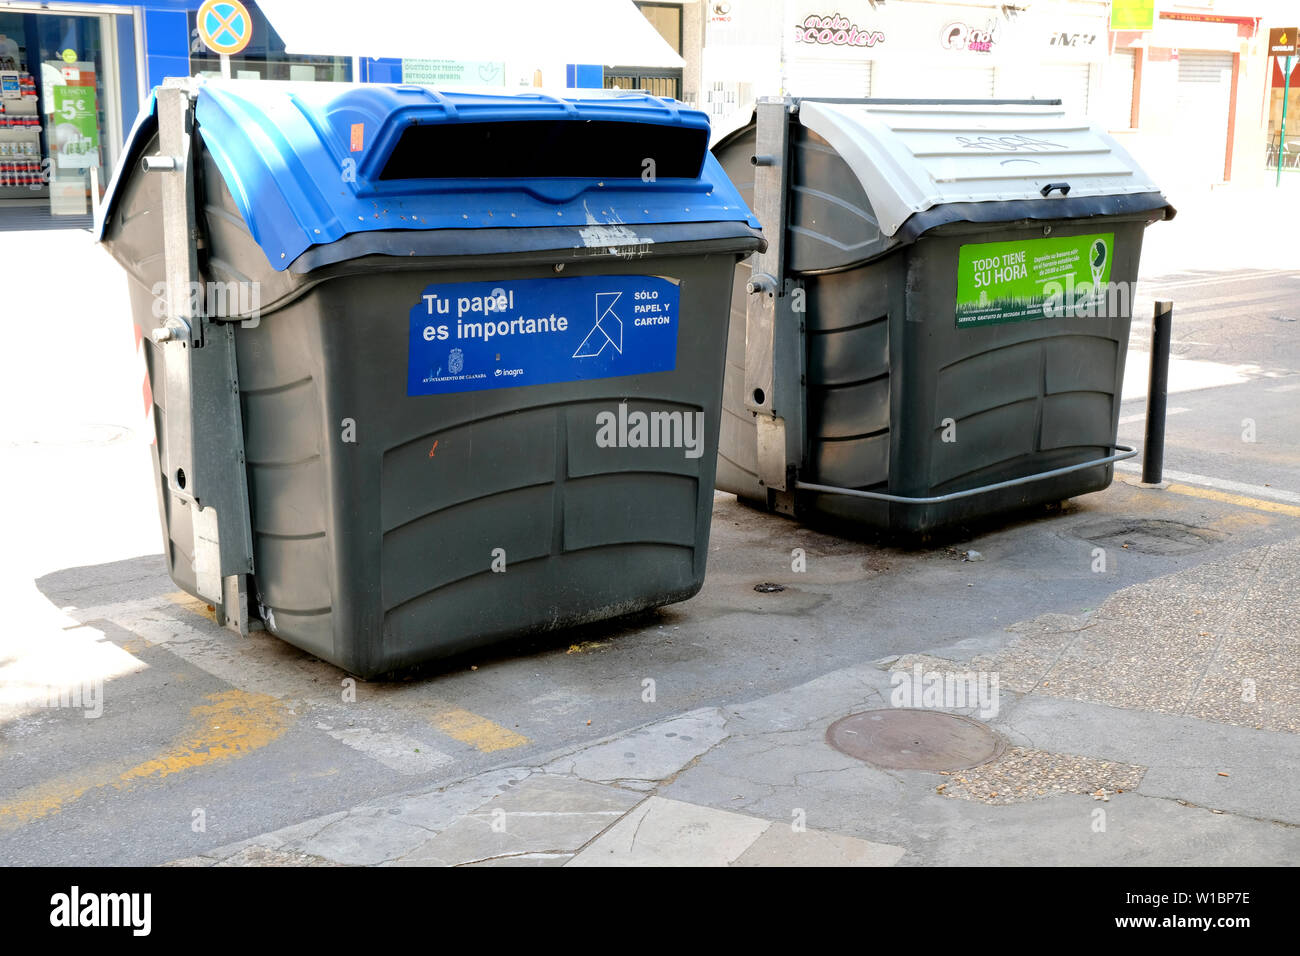 Trash and recycling bins side by side on a street in Granada, Spain; 'tu papel es importante' (your rolepaper is important). - Stock Image